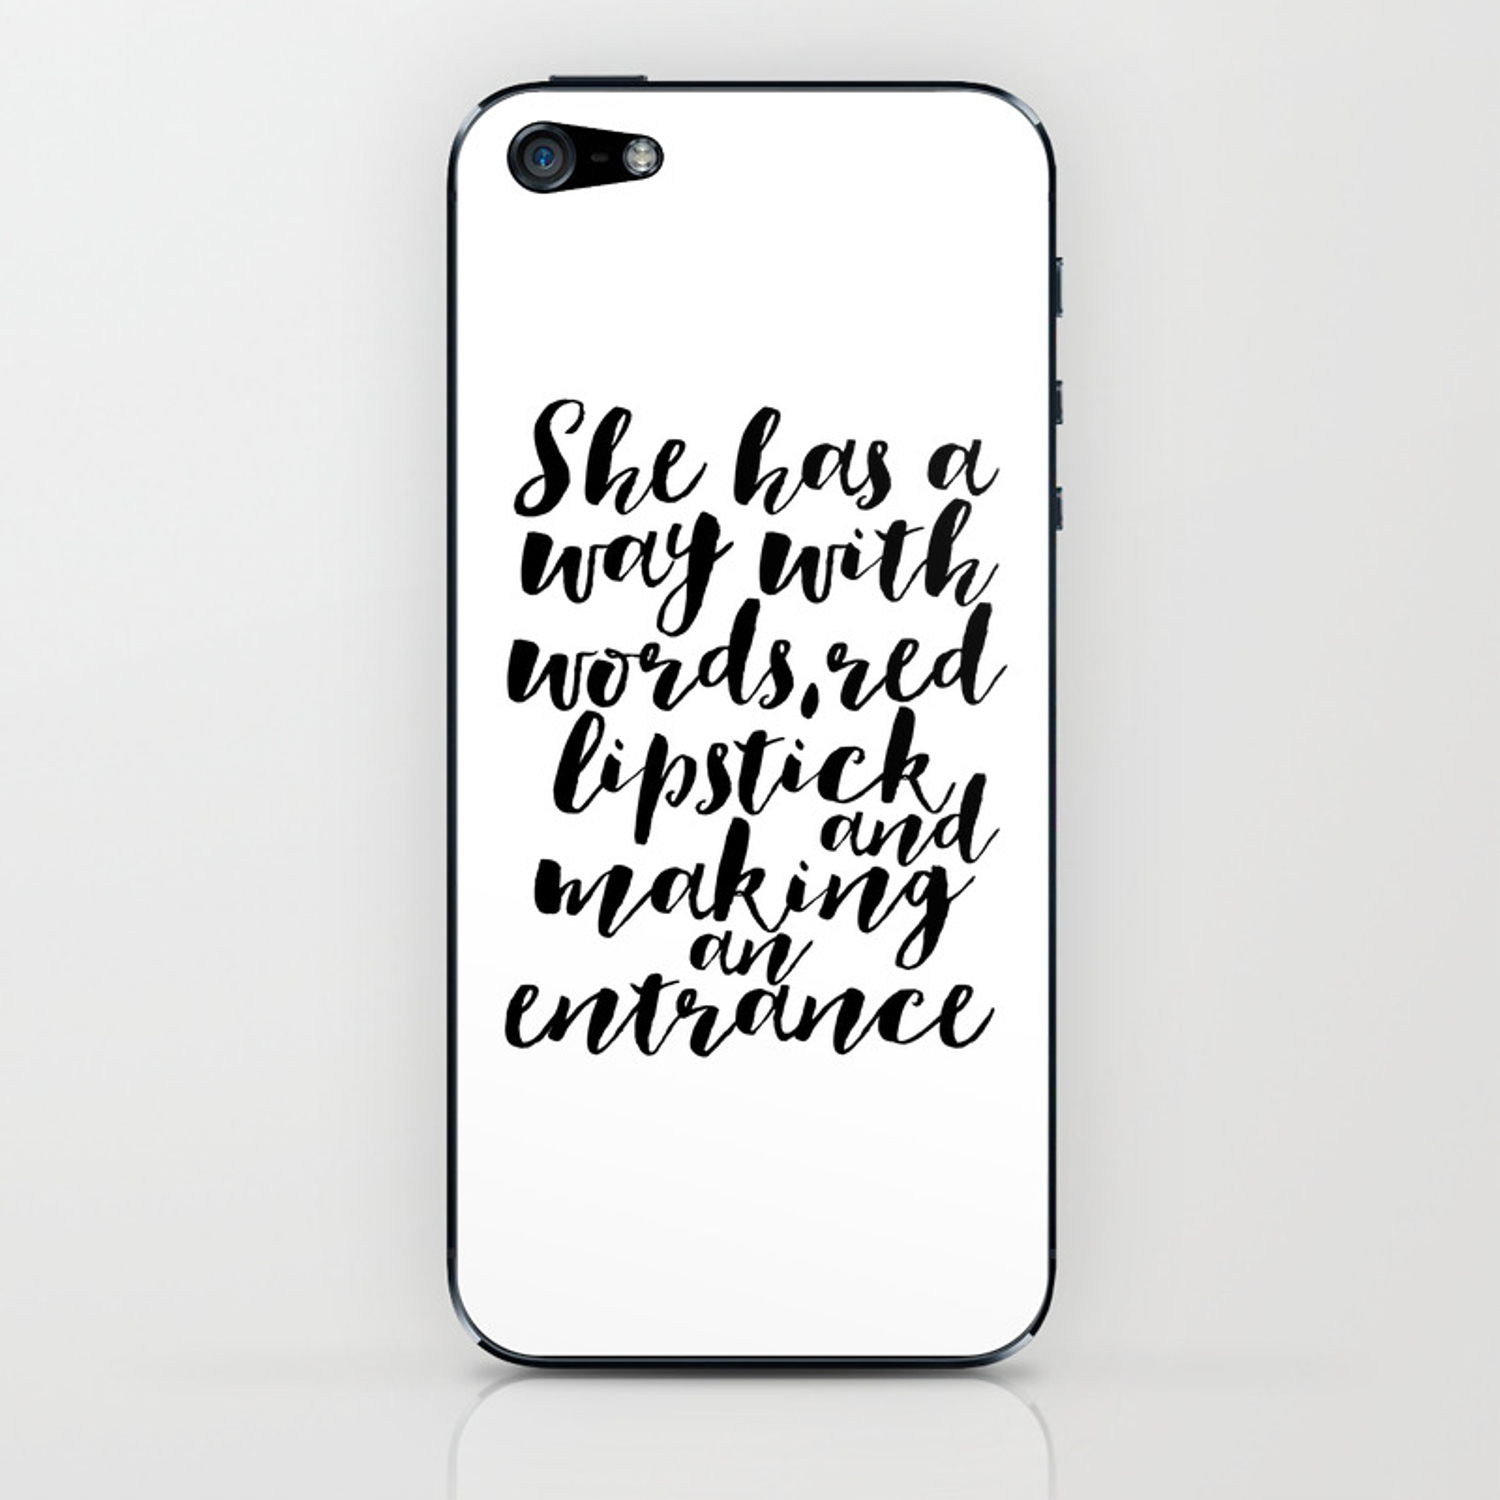 Makeup Quotes Makeup Decor Quotes Fashion Decor Gift For Her Women Gift Fashionista Boss Lady Office Iphone Skin By Milos955